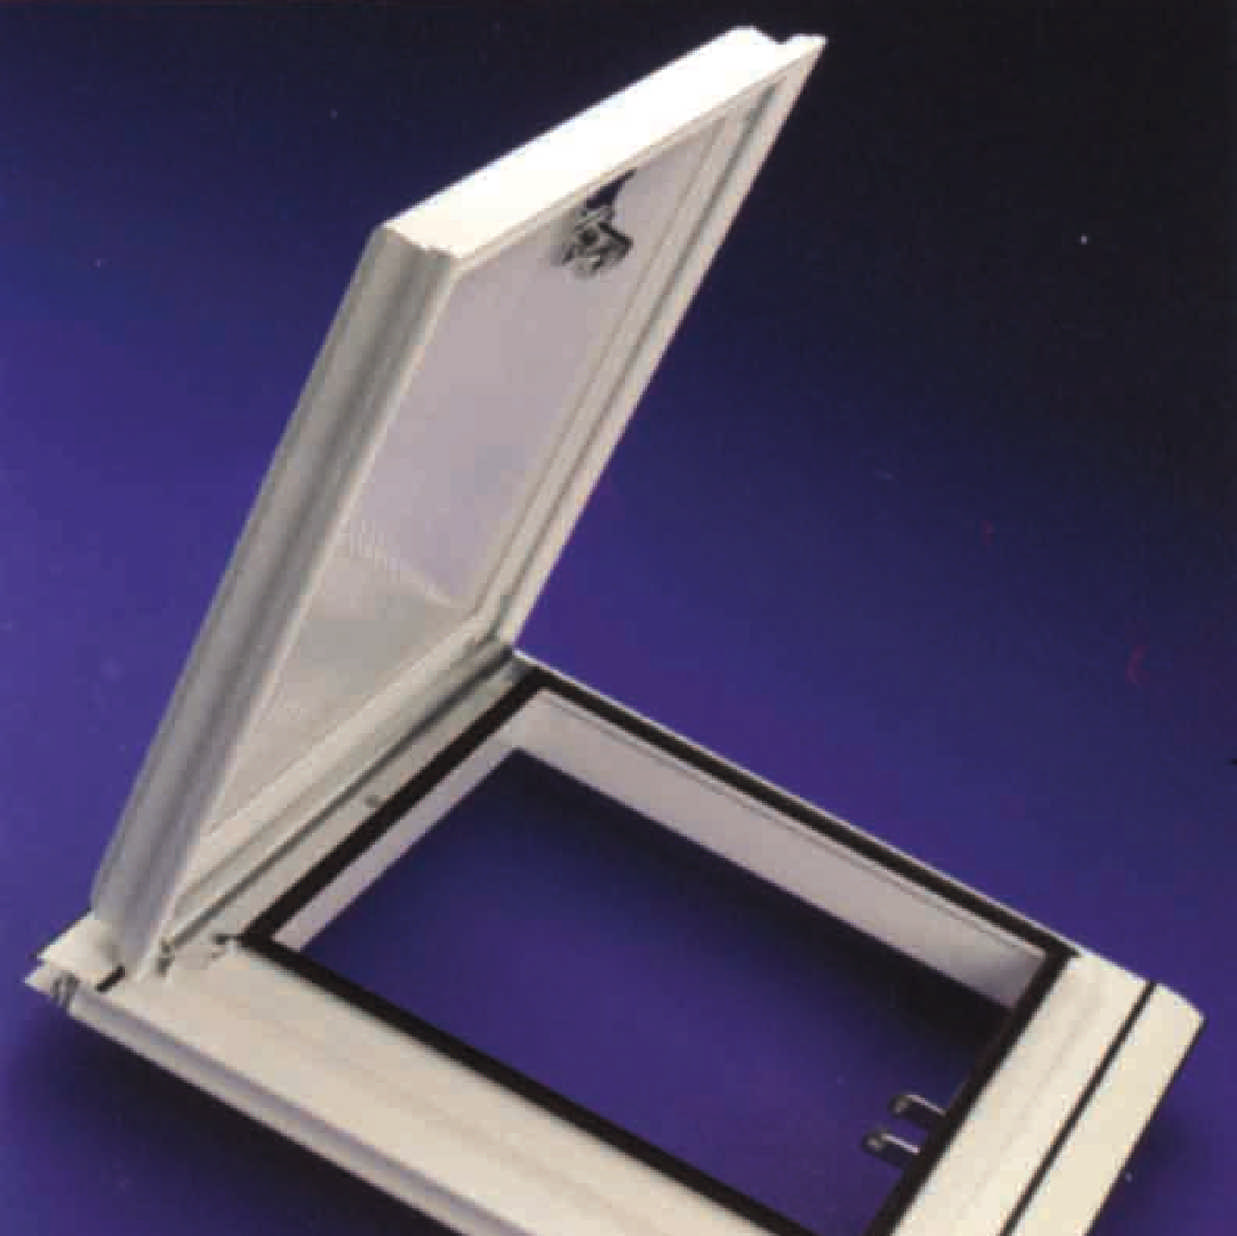 Buy Aluminium/uPVC Conservatory Roof Vent (Bar-to-Bar) for 24mm thick glass online today